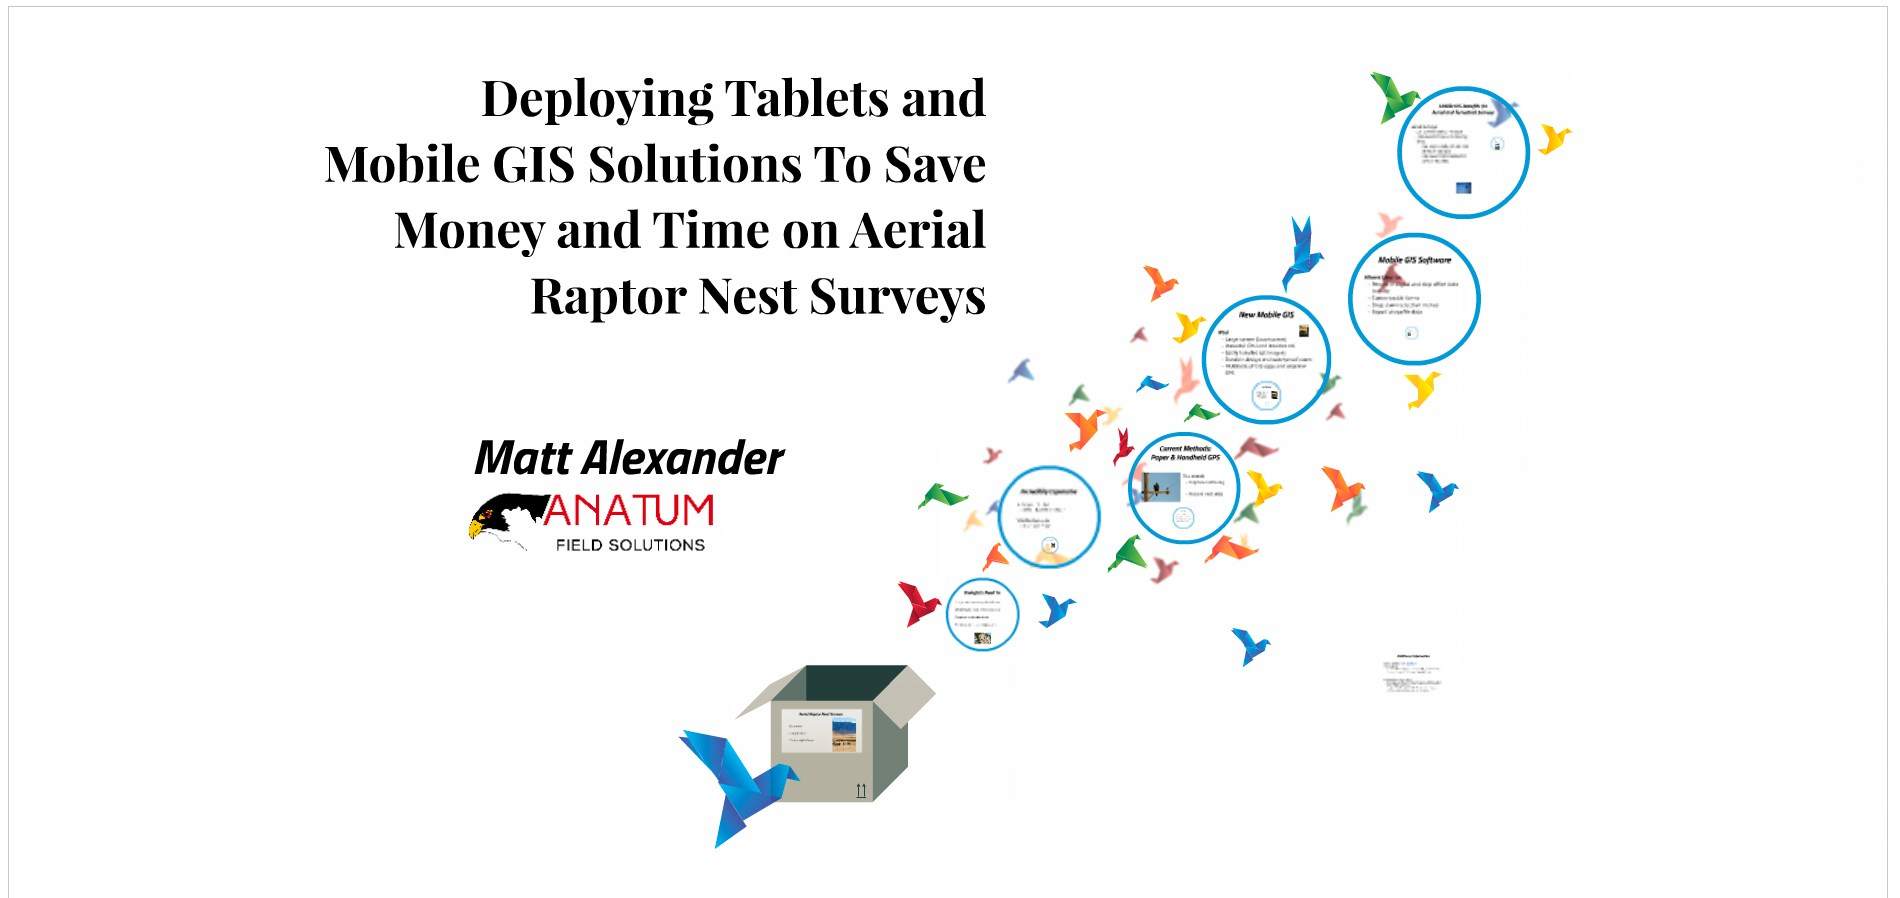 Using Tablets For Data Collection to Increase the Efficiency of Aerial Surveys